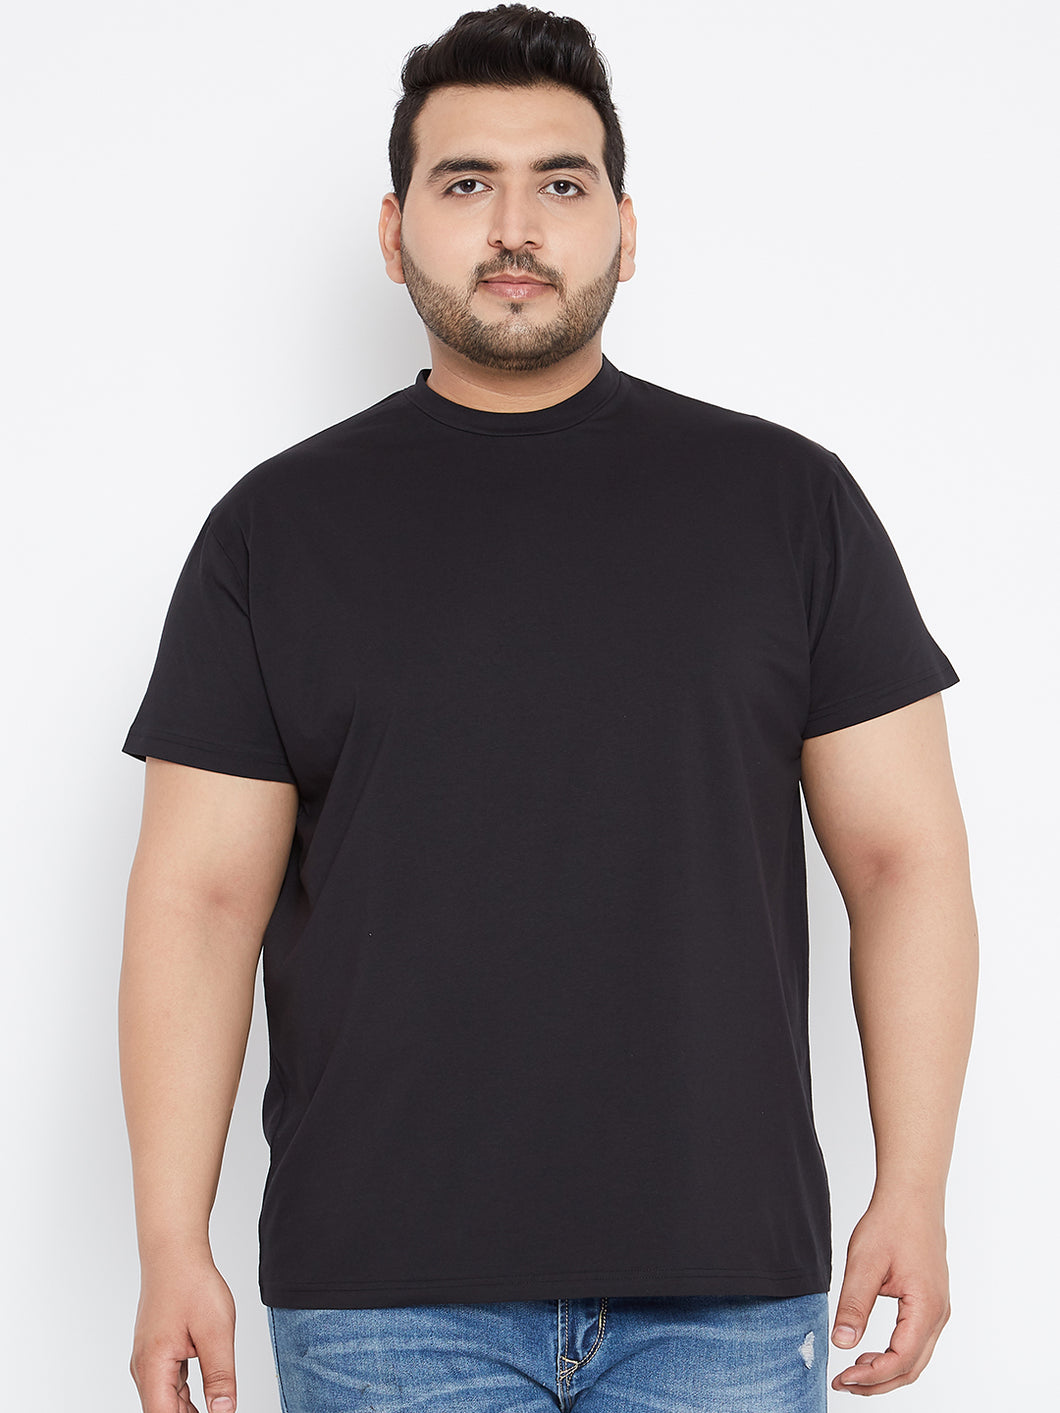 bigbanana Tony Solid Round Neck Tshirt in Black Color - Bigbanana